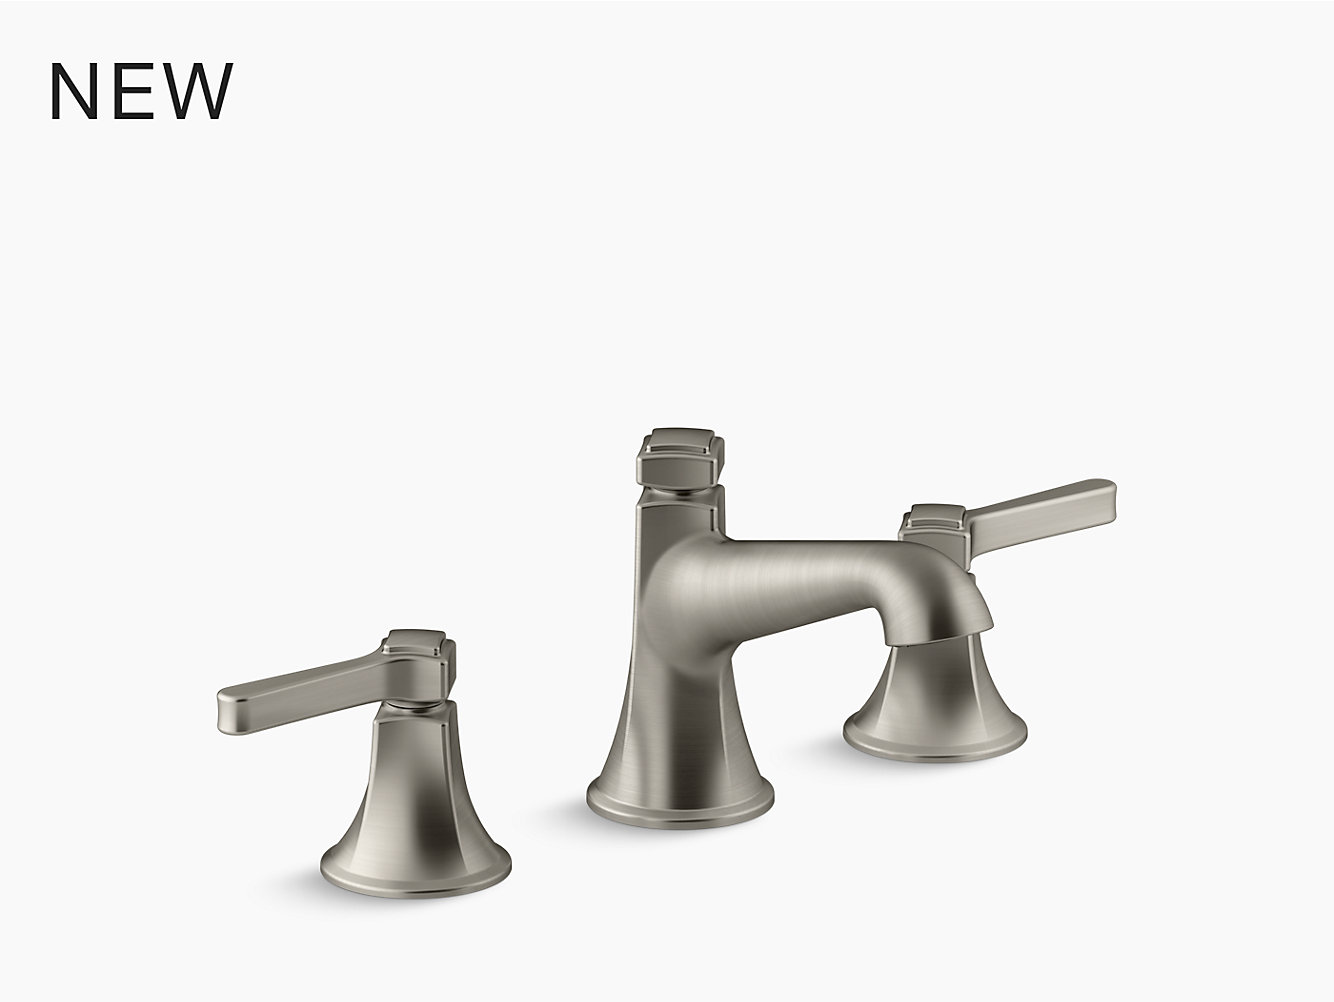 forte single handle pullout spray kitchen sink faucet k 10433 view larger